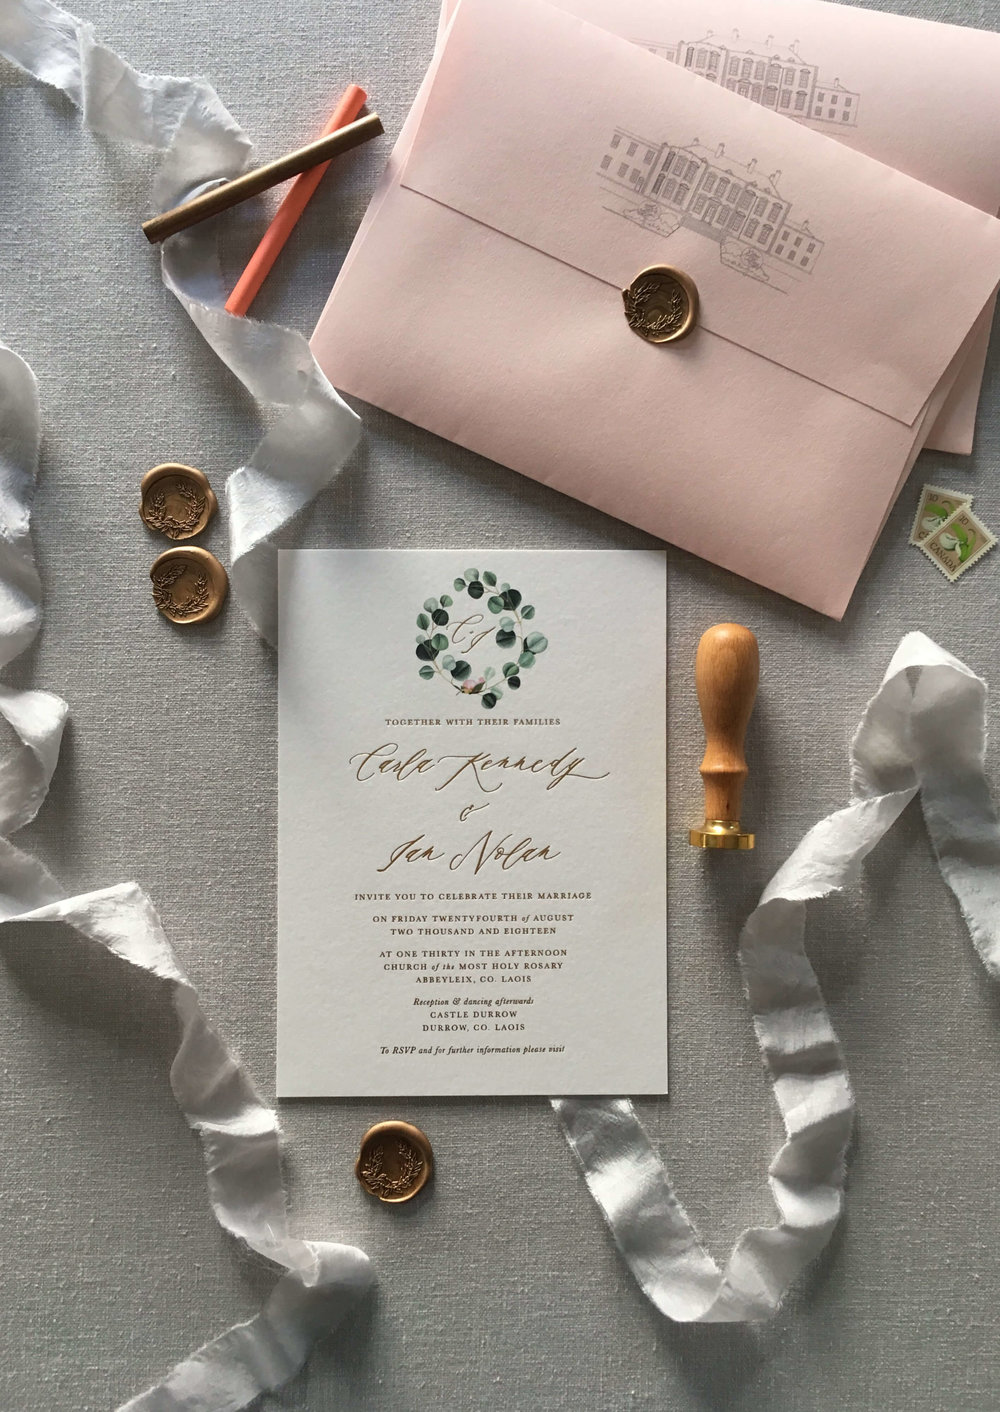 castle_durrow_gold_foil_invite_botanical_wax_seal_wedding_stationery_01.jpg